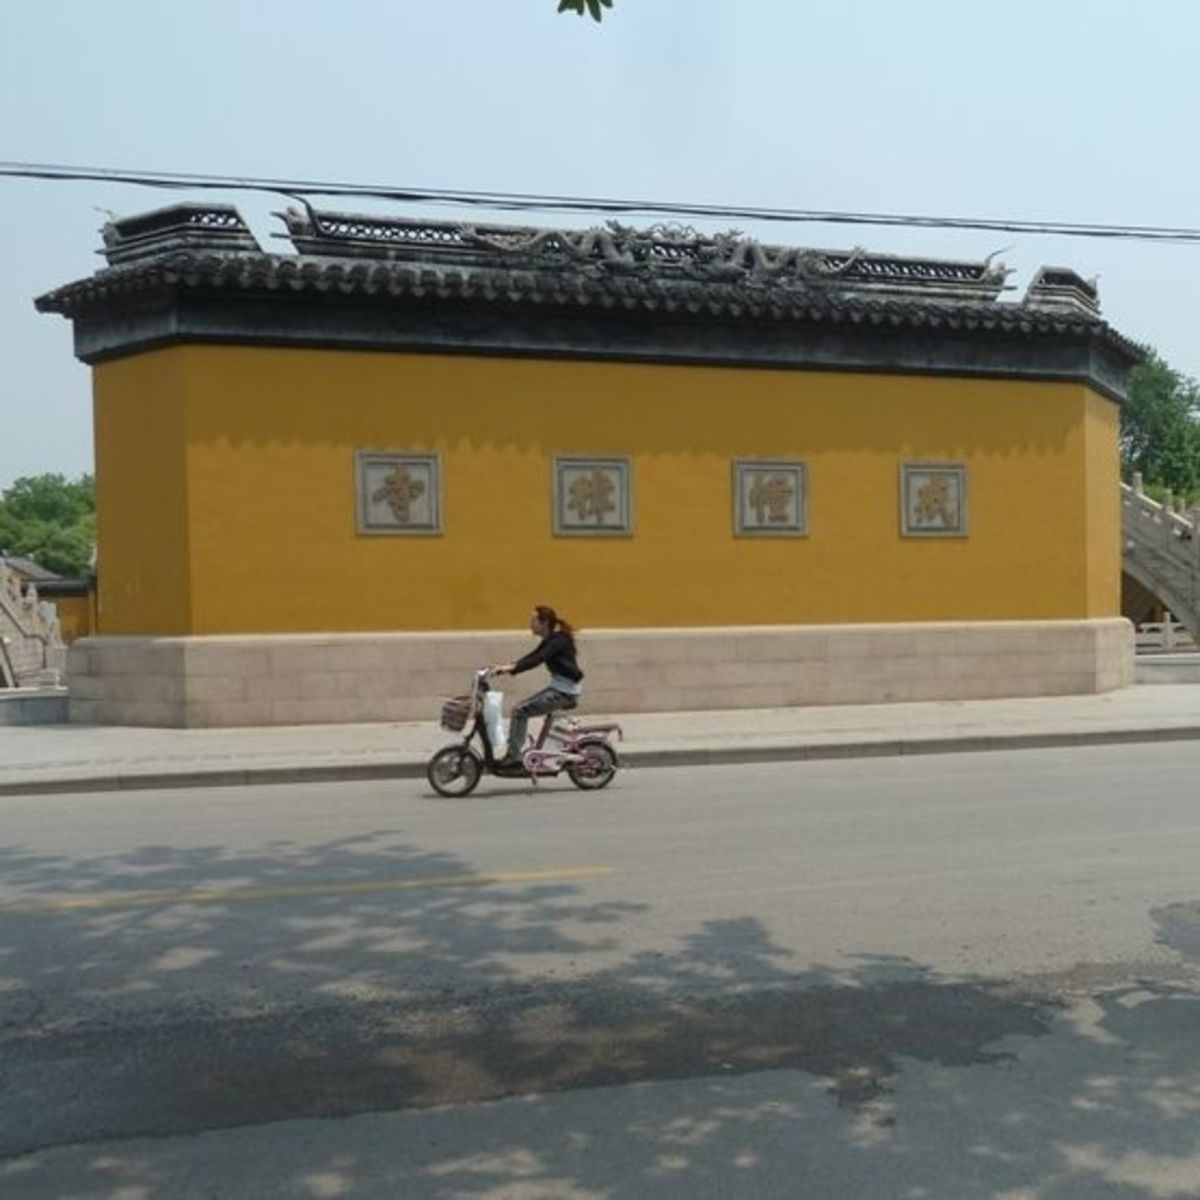 """Temples often have Feng Shui Walls  Protecting the gate - bridges, water, and a feng shui wall In China people believe the gate of the temple needs protecting. From what? """"Evil winds and ghosts."""" People here believe that ghosts cannot travel across w"""